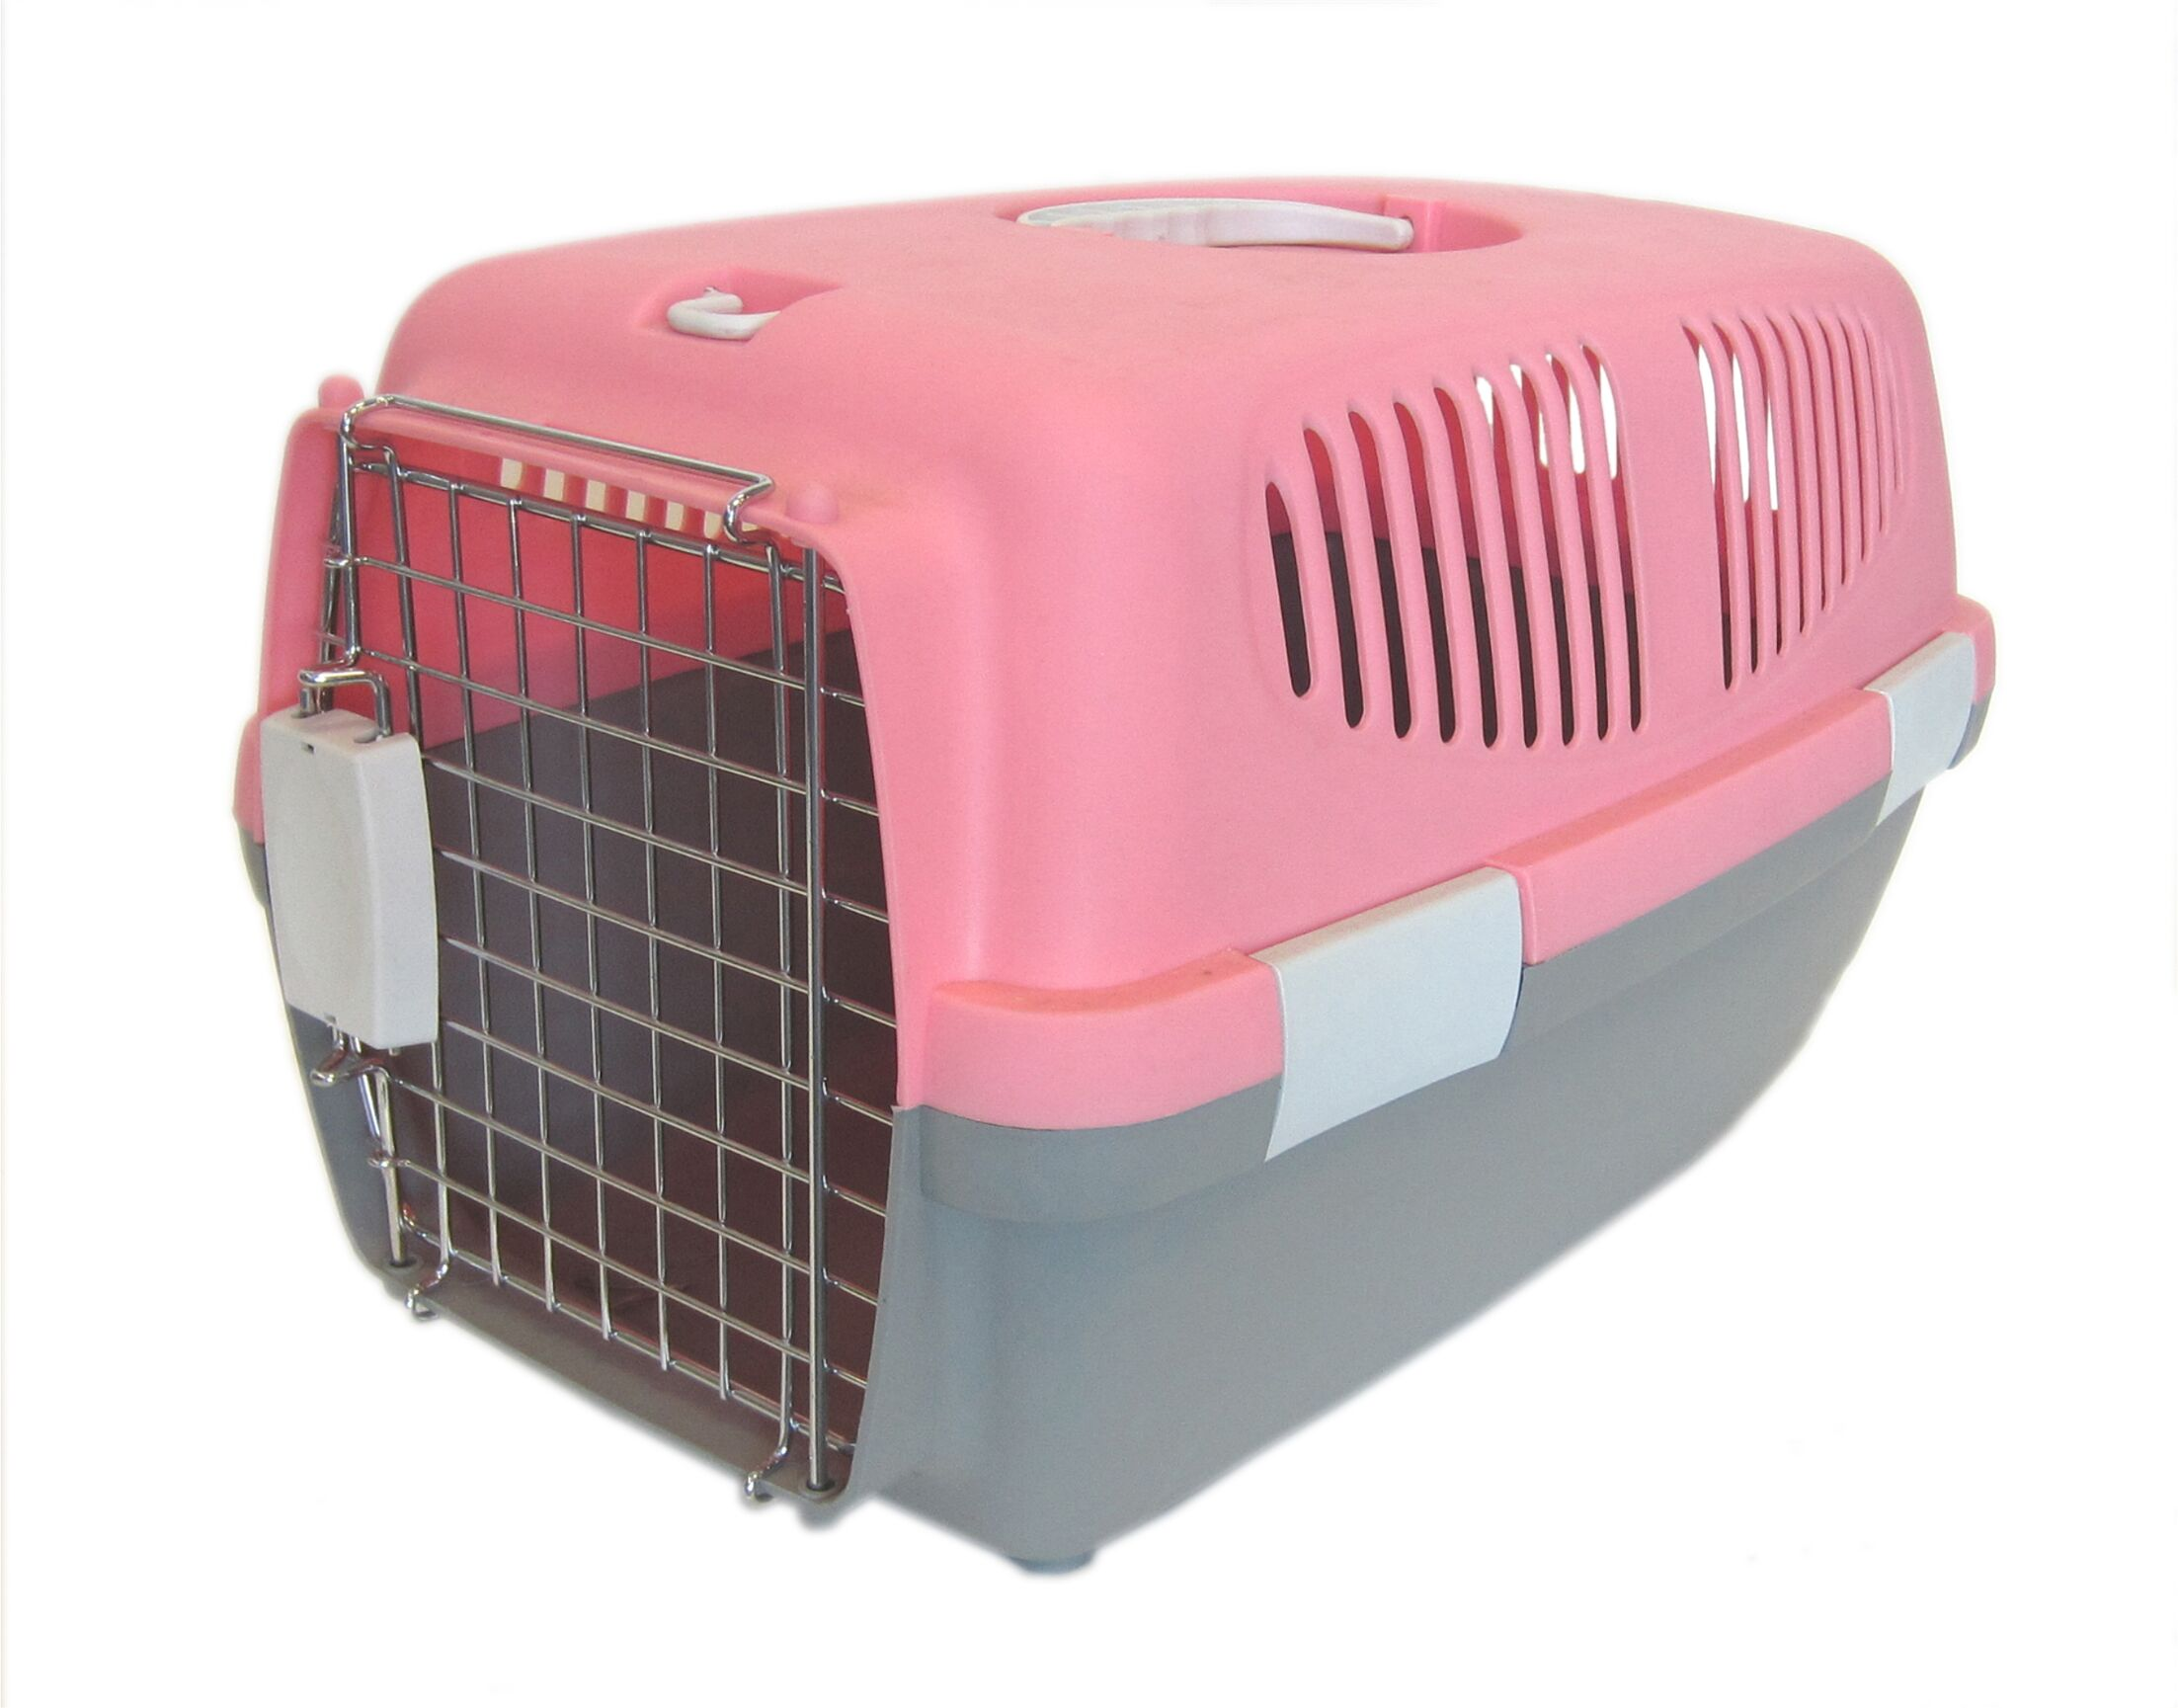 Plastic Pet Carrier Size: Small (12